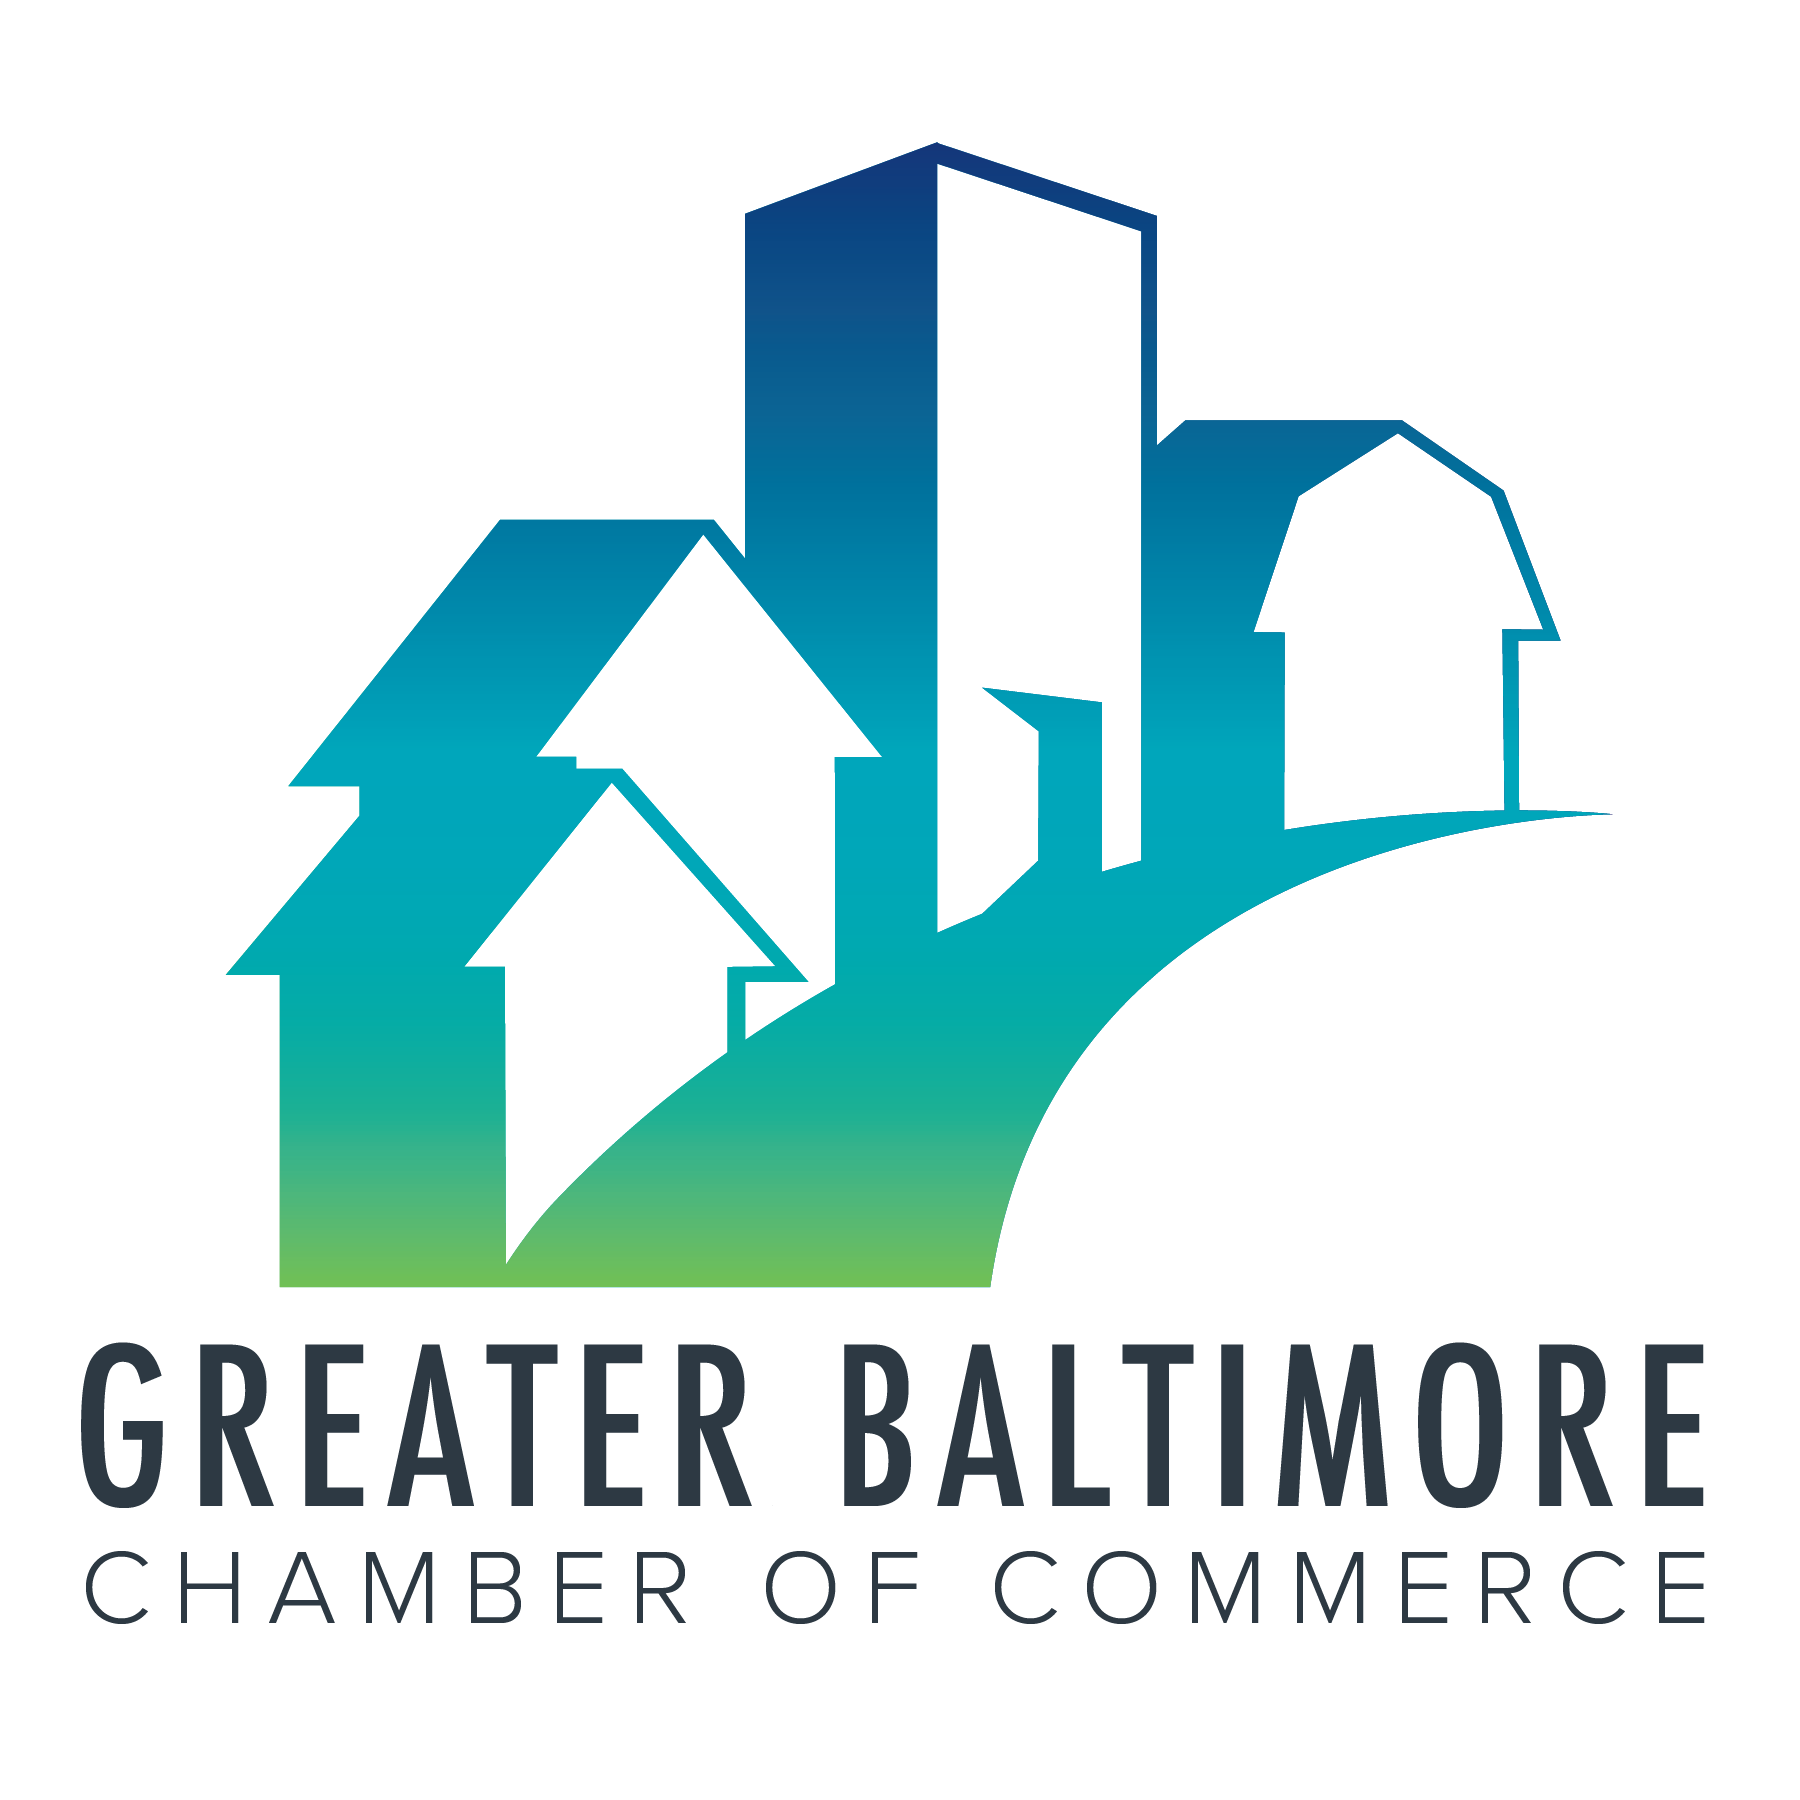 Greater Baltimore Chamber of Commerce